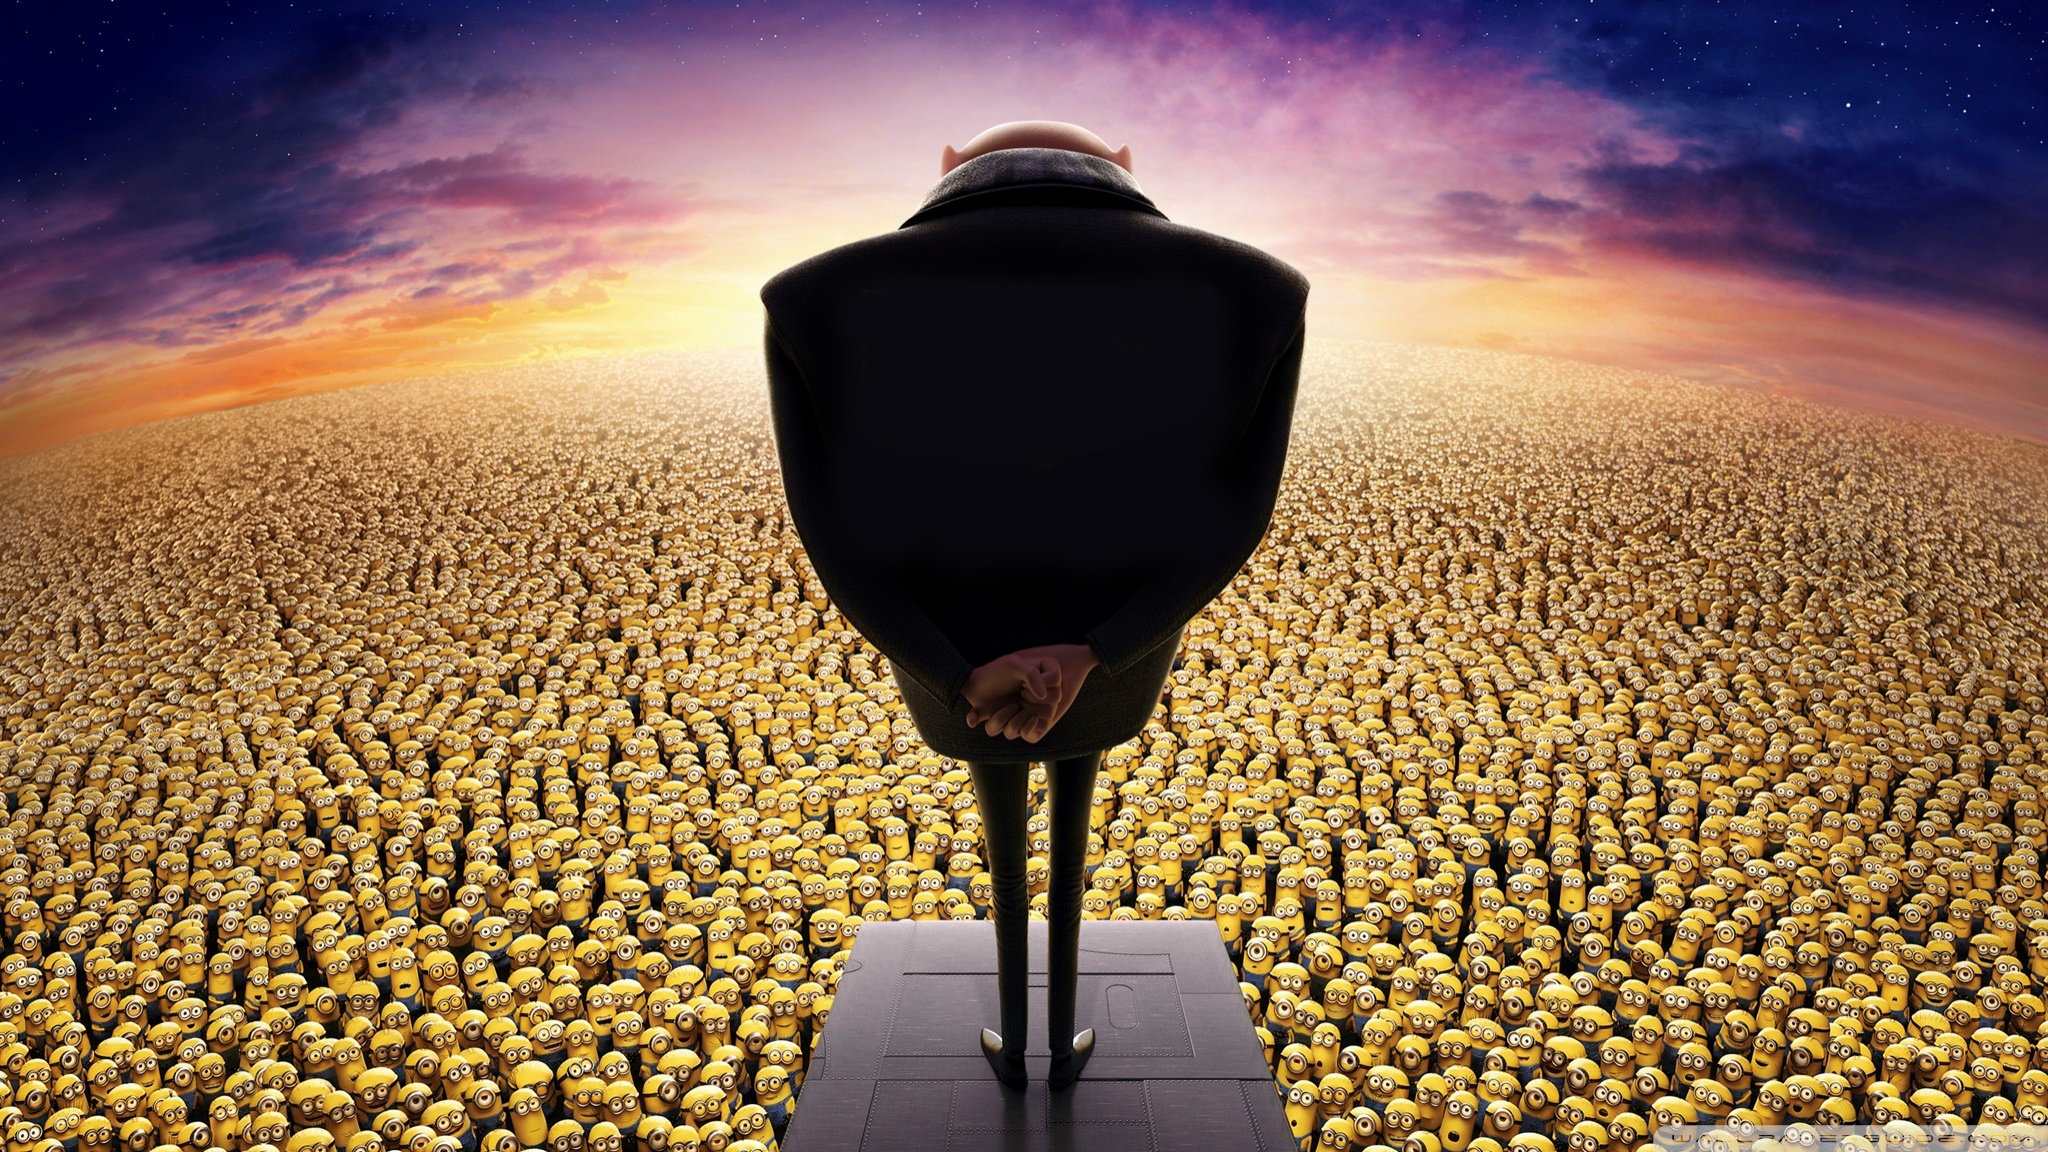 Despicable Me 2 Gru And Minions - HD Wallpaper